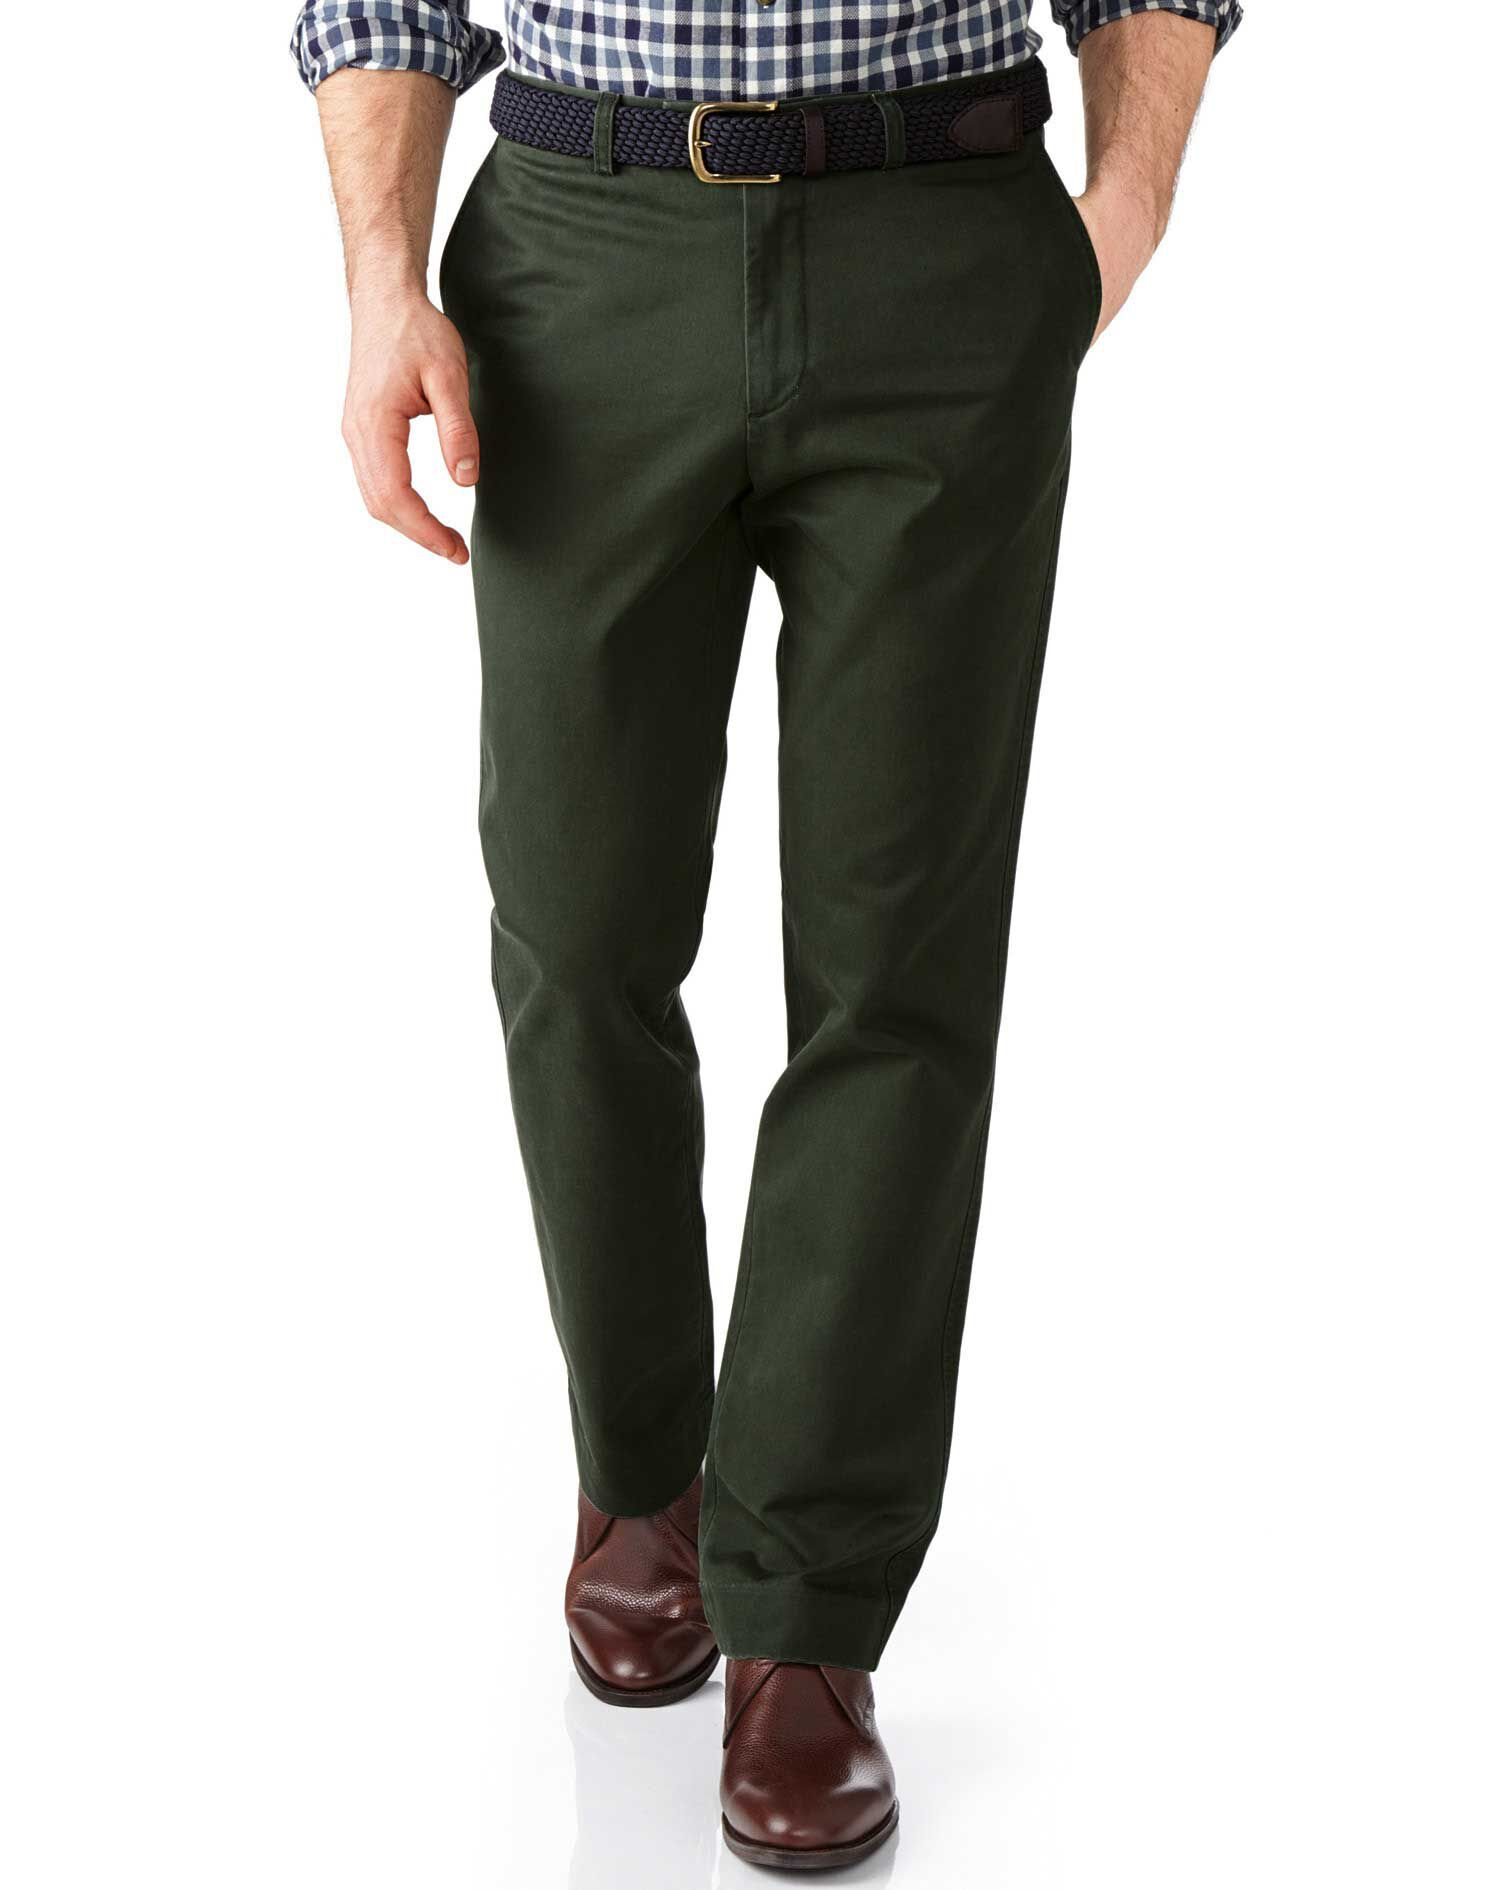 Dark Green Slim Fit Flat Front Weekend Cotton Chino Trousers Size W42 L29 by Charles Tyrwhitt